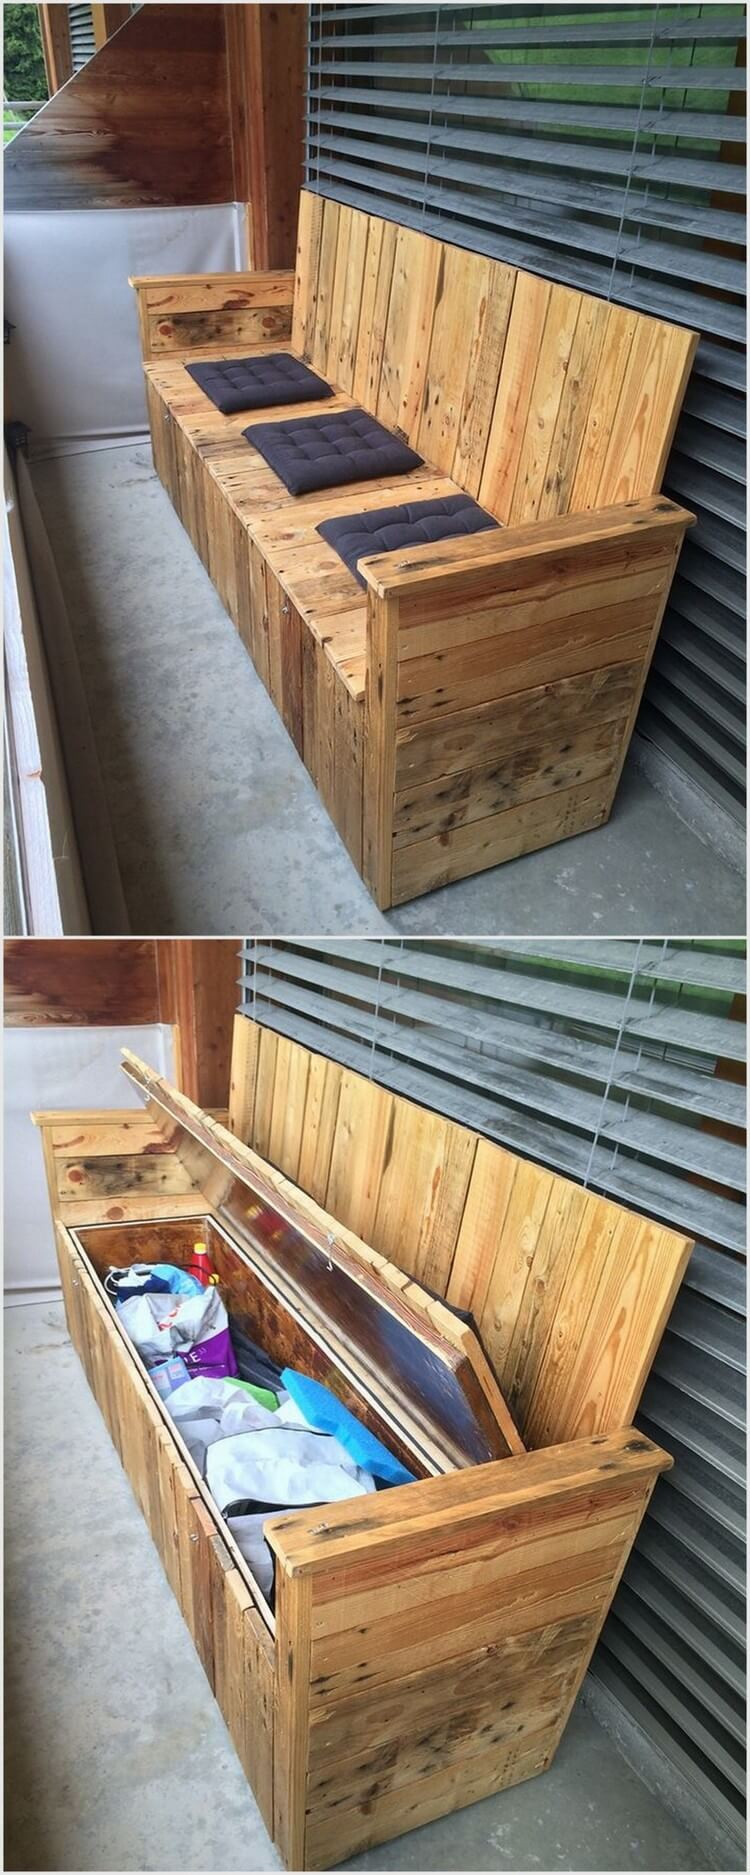 DIY Wood Projects  Some Fascinating DIY Projects with Old Wood Pallets